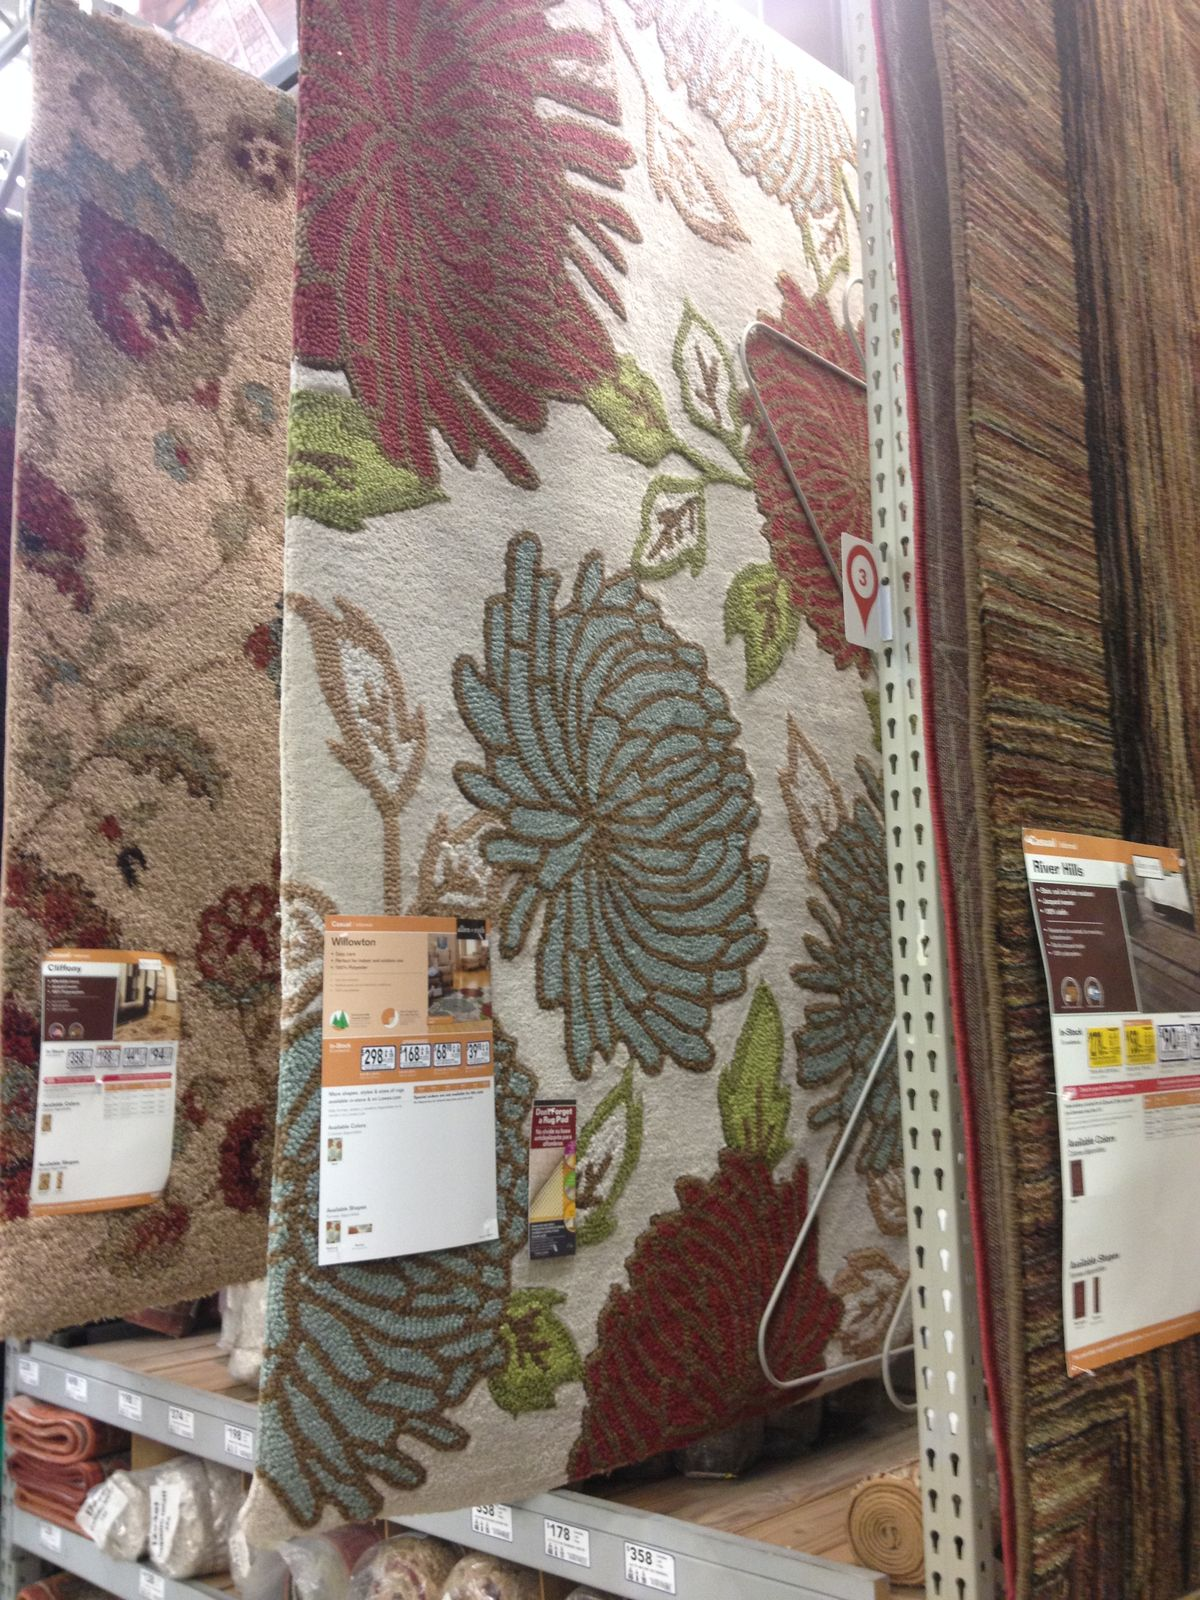 Make Your Floor More Beautiful With Elegant Lowes Rugs: Floral Lowes Rugs For Floor Decor Ideas